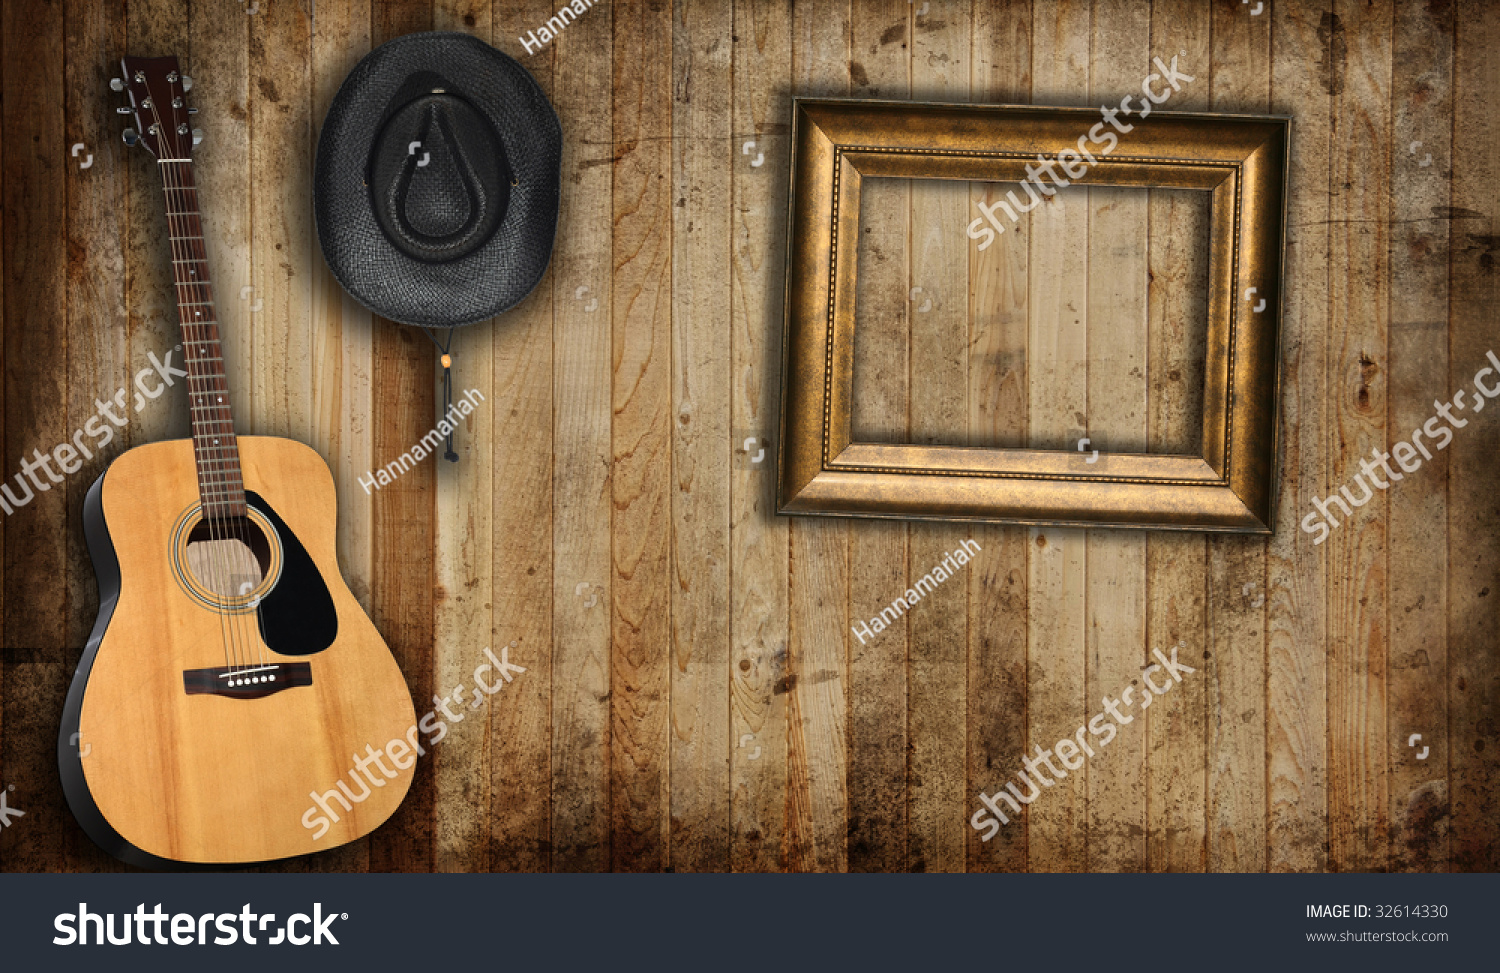 cowboy hat guitar and empty picture frame against an old barn background